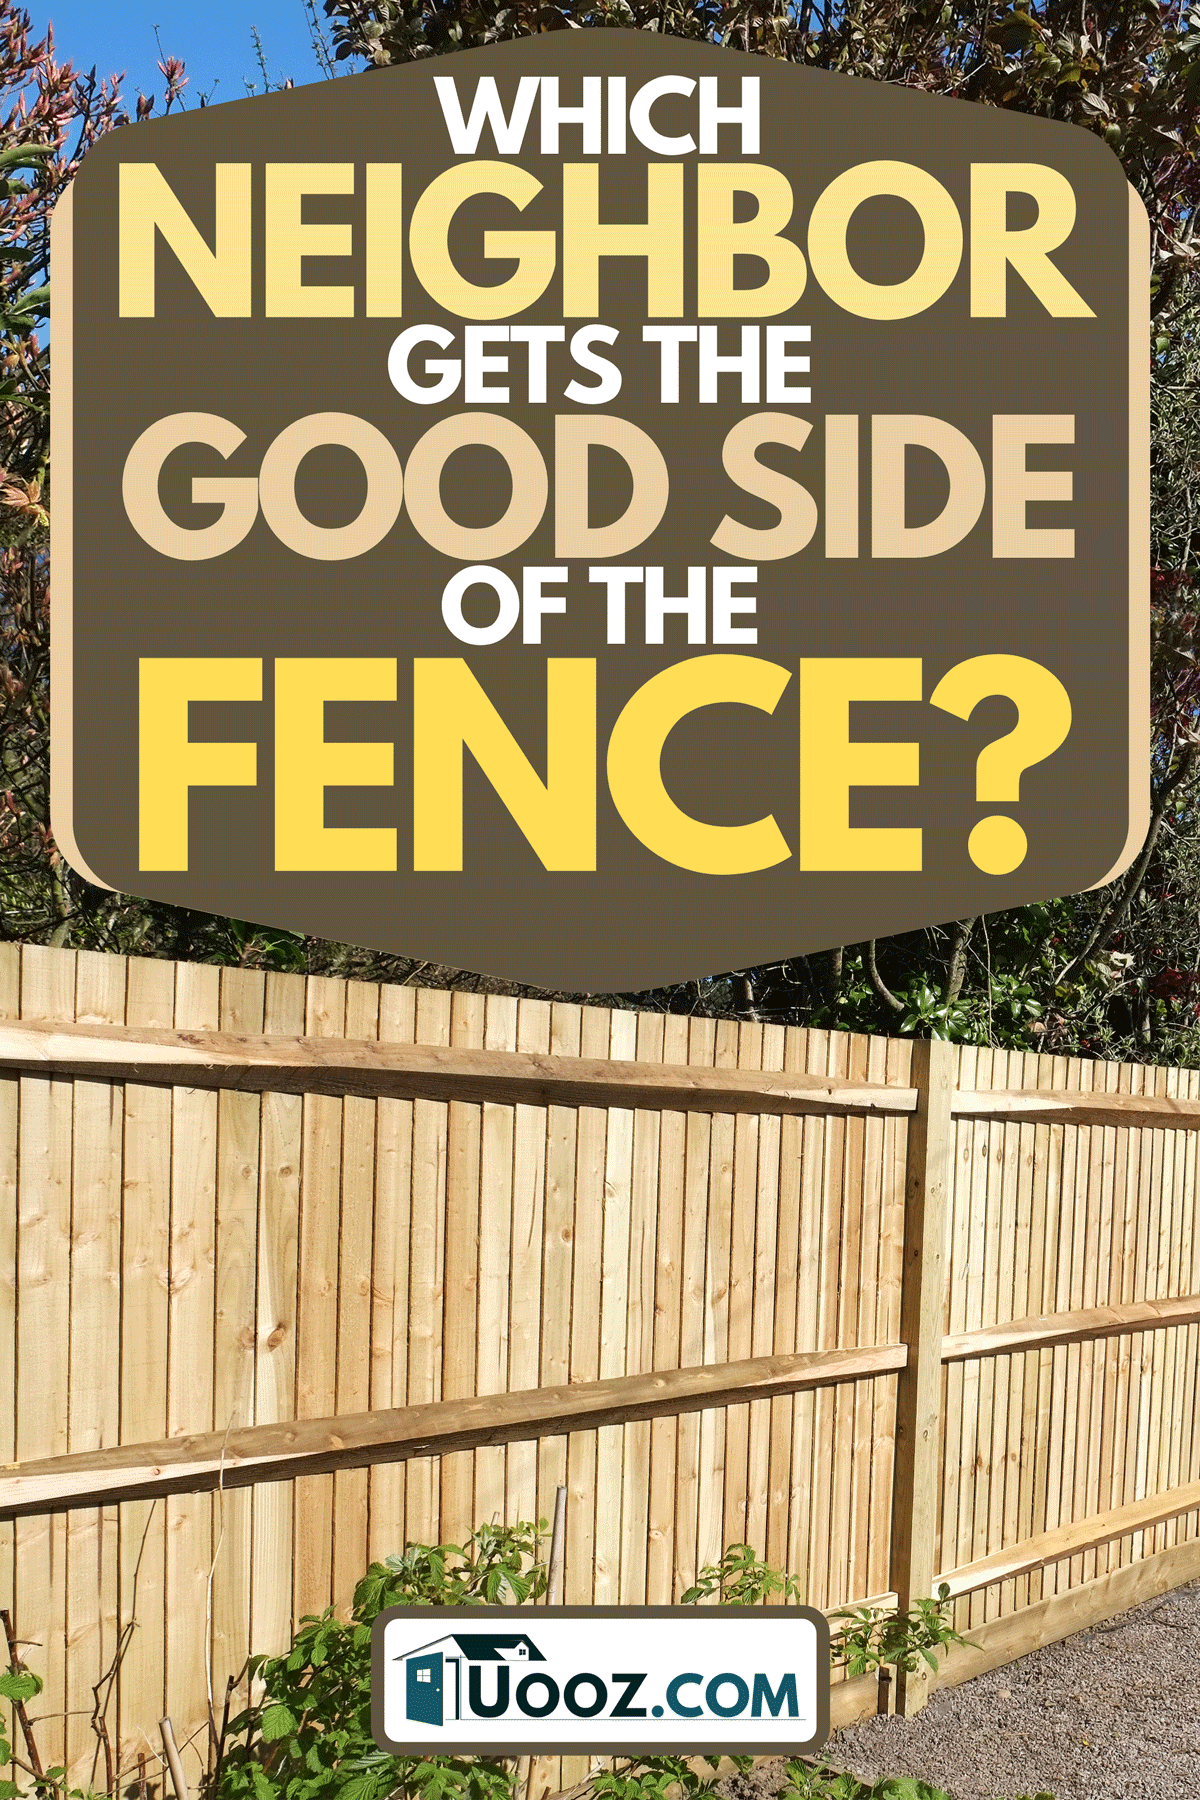 A brand new wooden shiplap boundary fence, Which Neighbor Gets The Good Side Of The Fence?